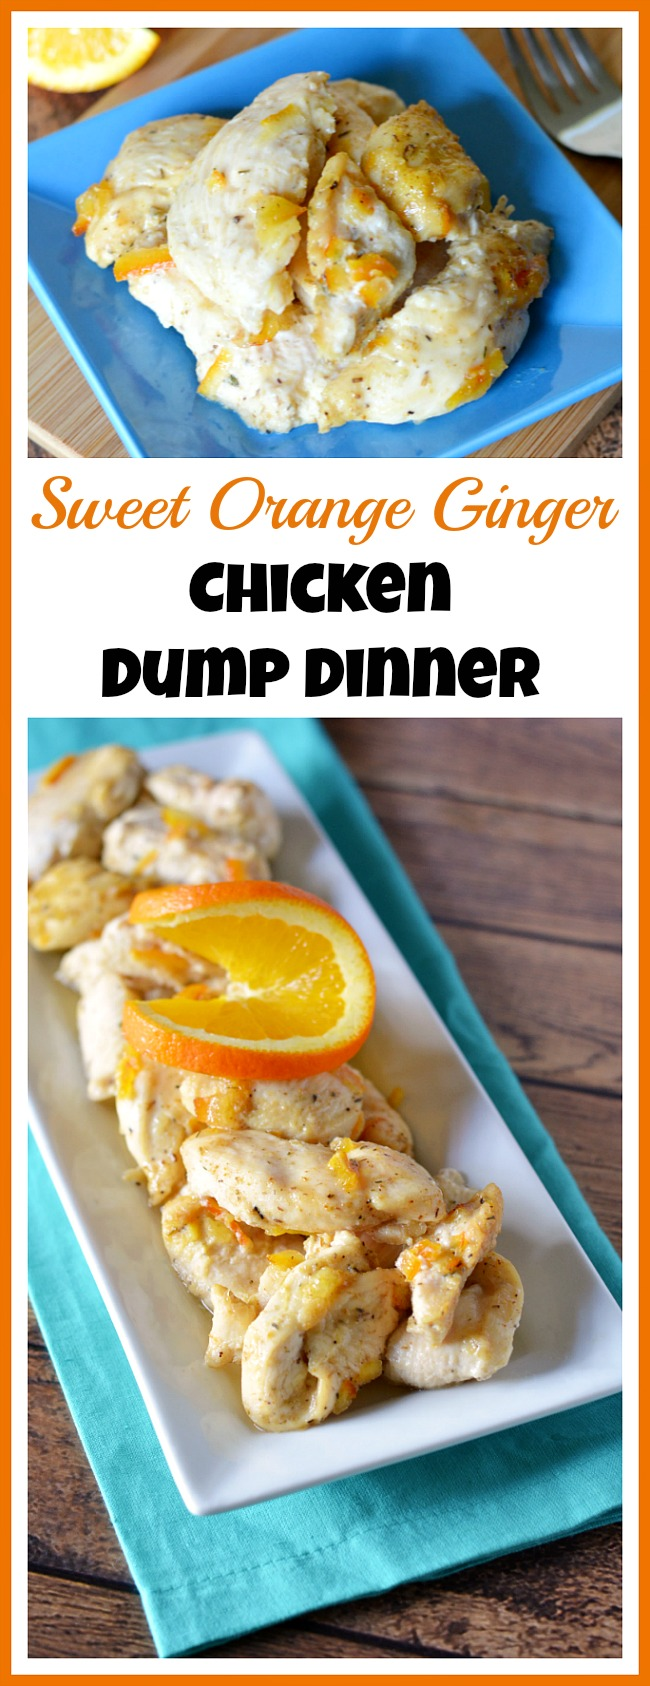 Don't have take-out on your next busy day! Instead, make this sweet orange ginger chicken dump dinner! Just dump it in a slow cooker or oven and enjoy!